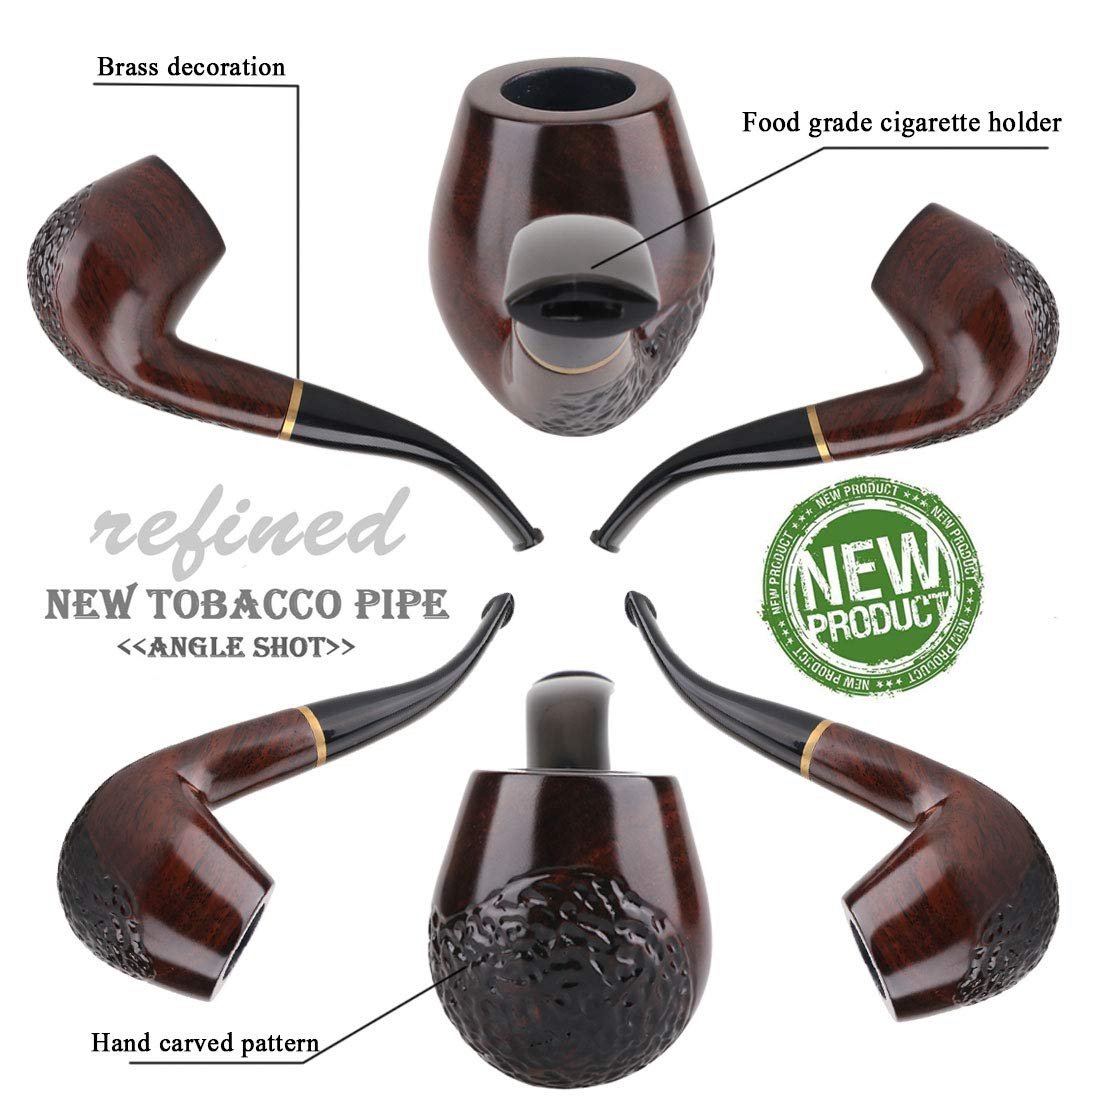 Amazon.com: Ylyycc solid wood tobaco pipe with several accessories tobacco pipe: Garden & Outdoor